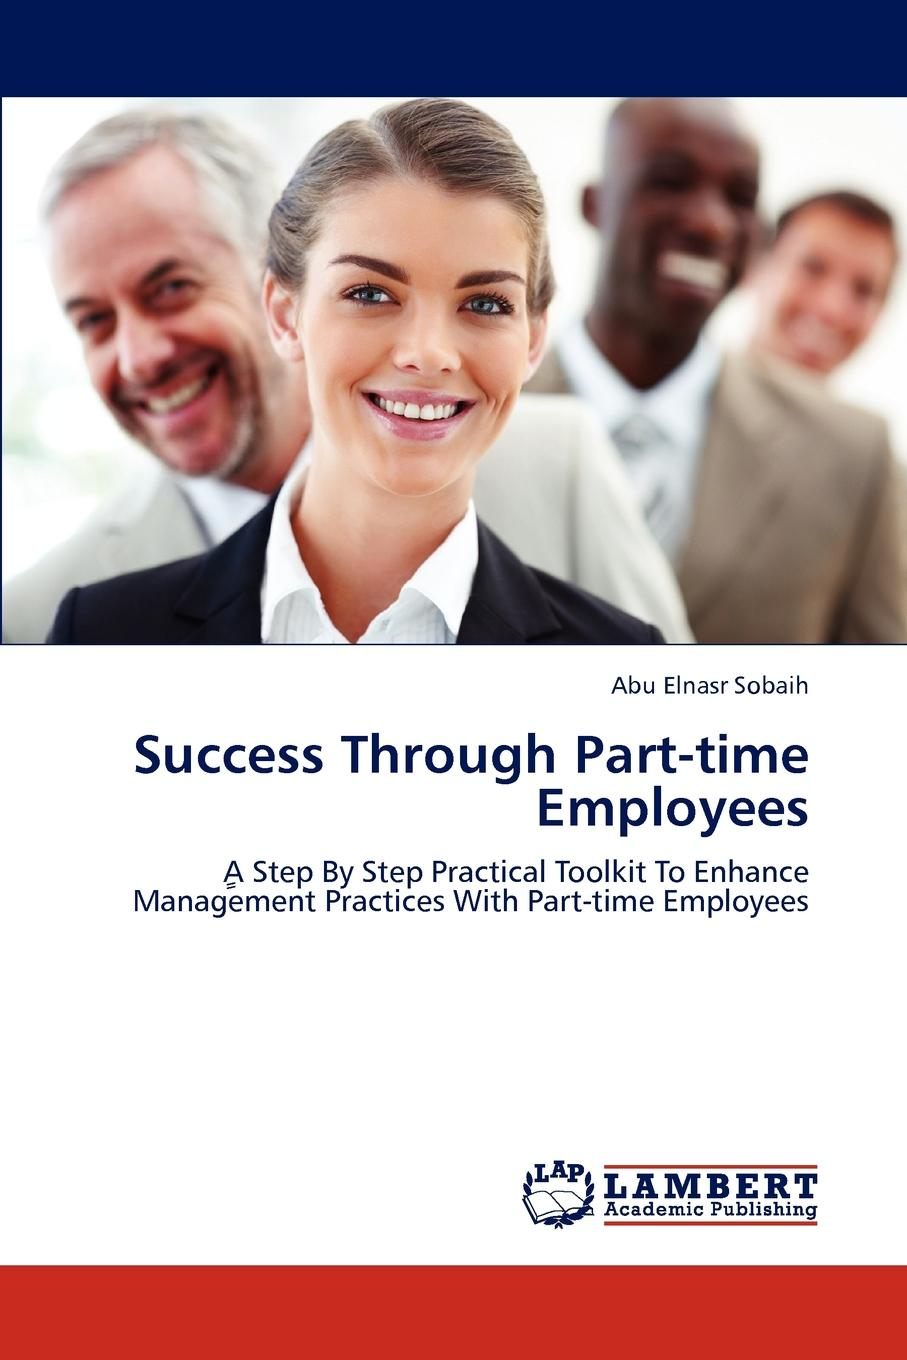 Abu Elnasr Sobaih Success Through Part-Time Employees charles green h the trusted advisor fieldbook a comprehensive toolkit for leading with trust